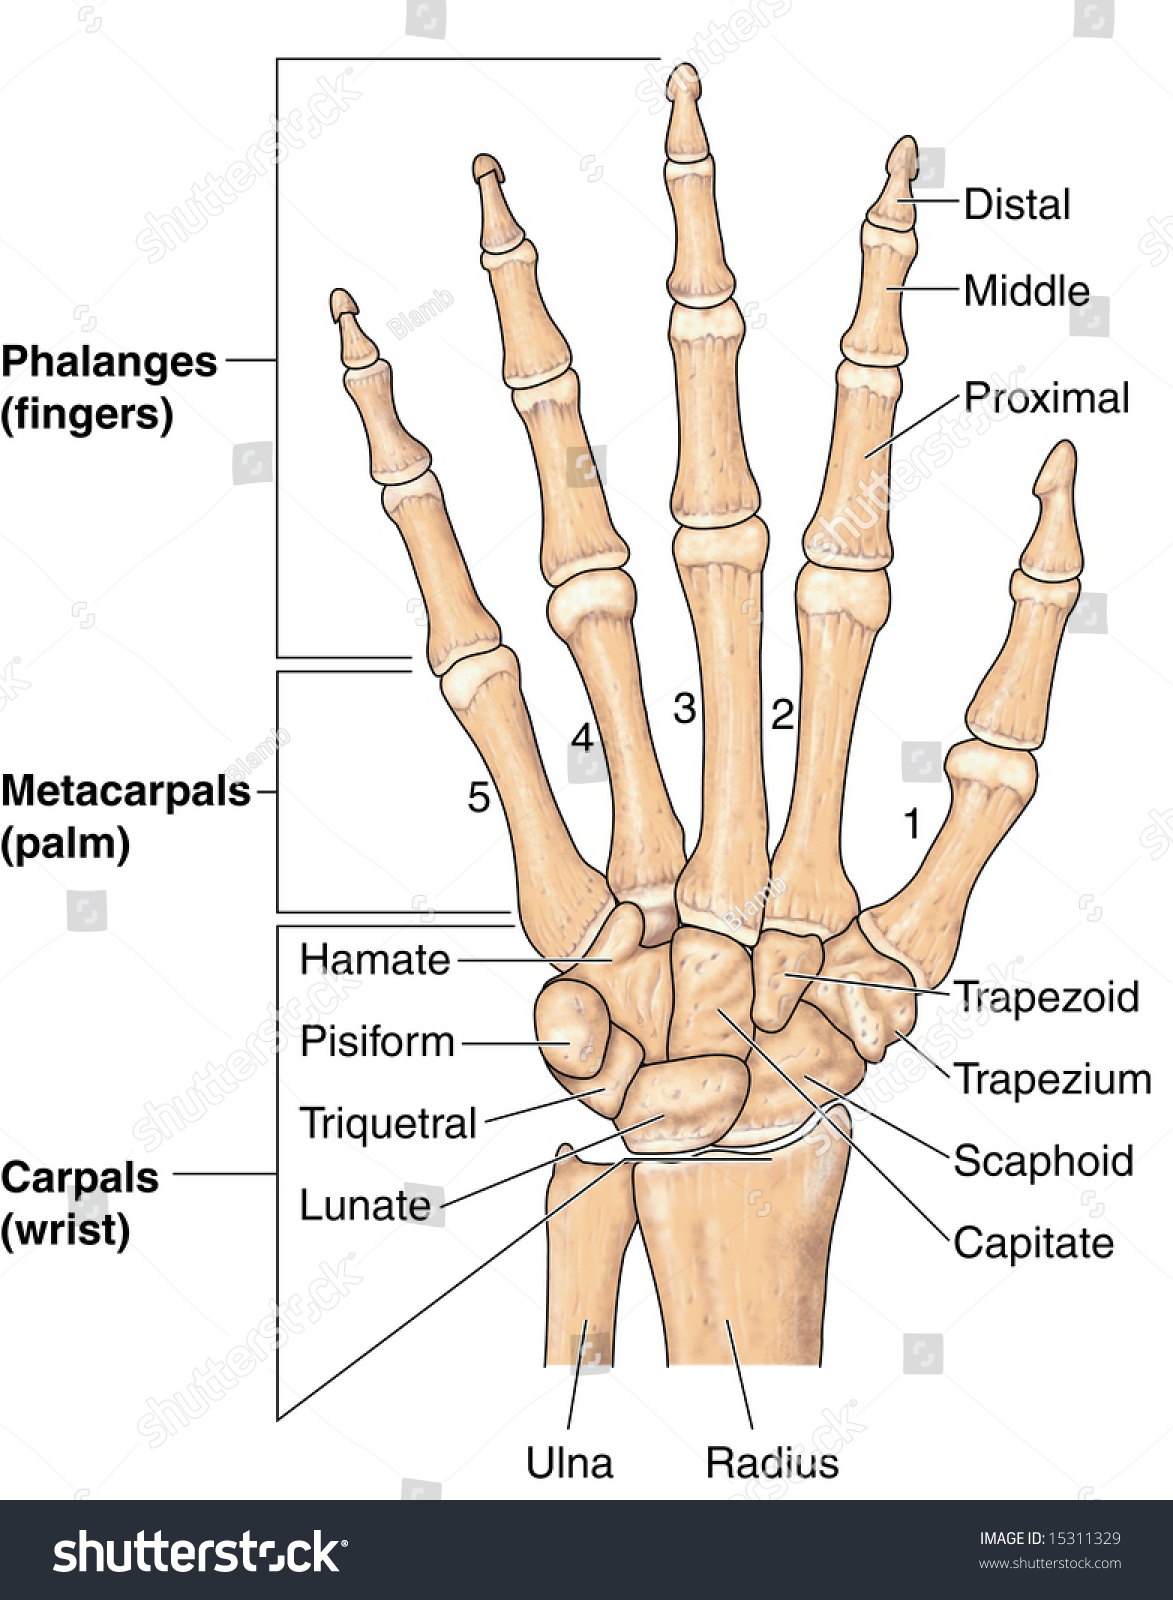 Human Hand Bones Labeled Stock Illustration 15311329 - Shutterstock